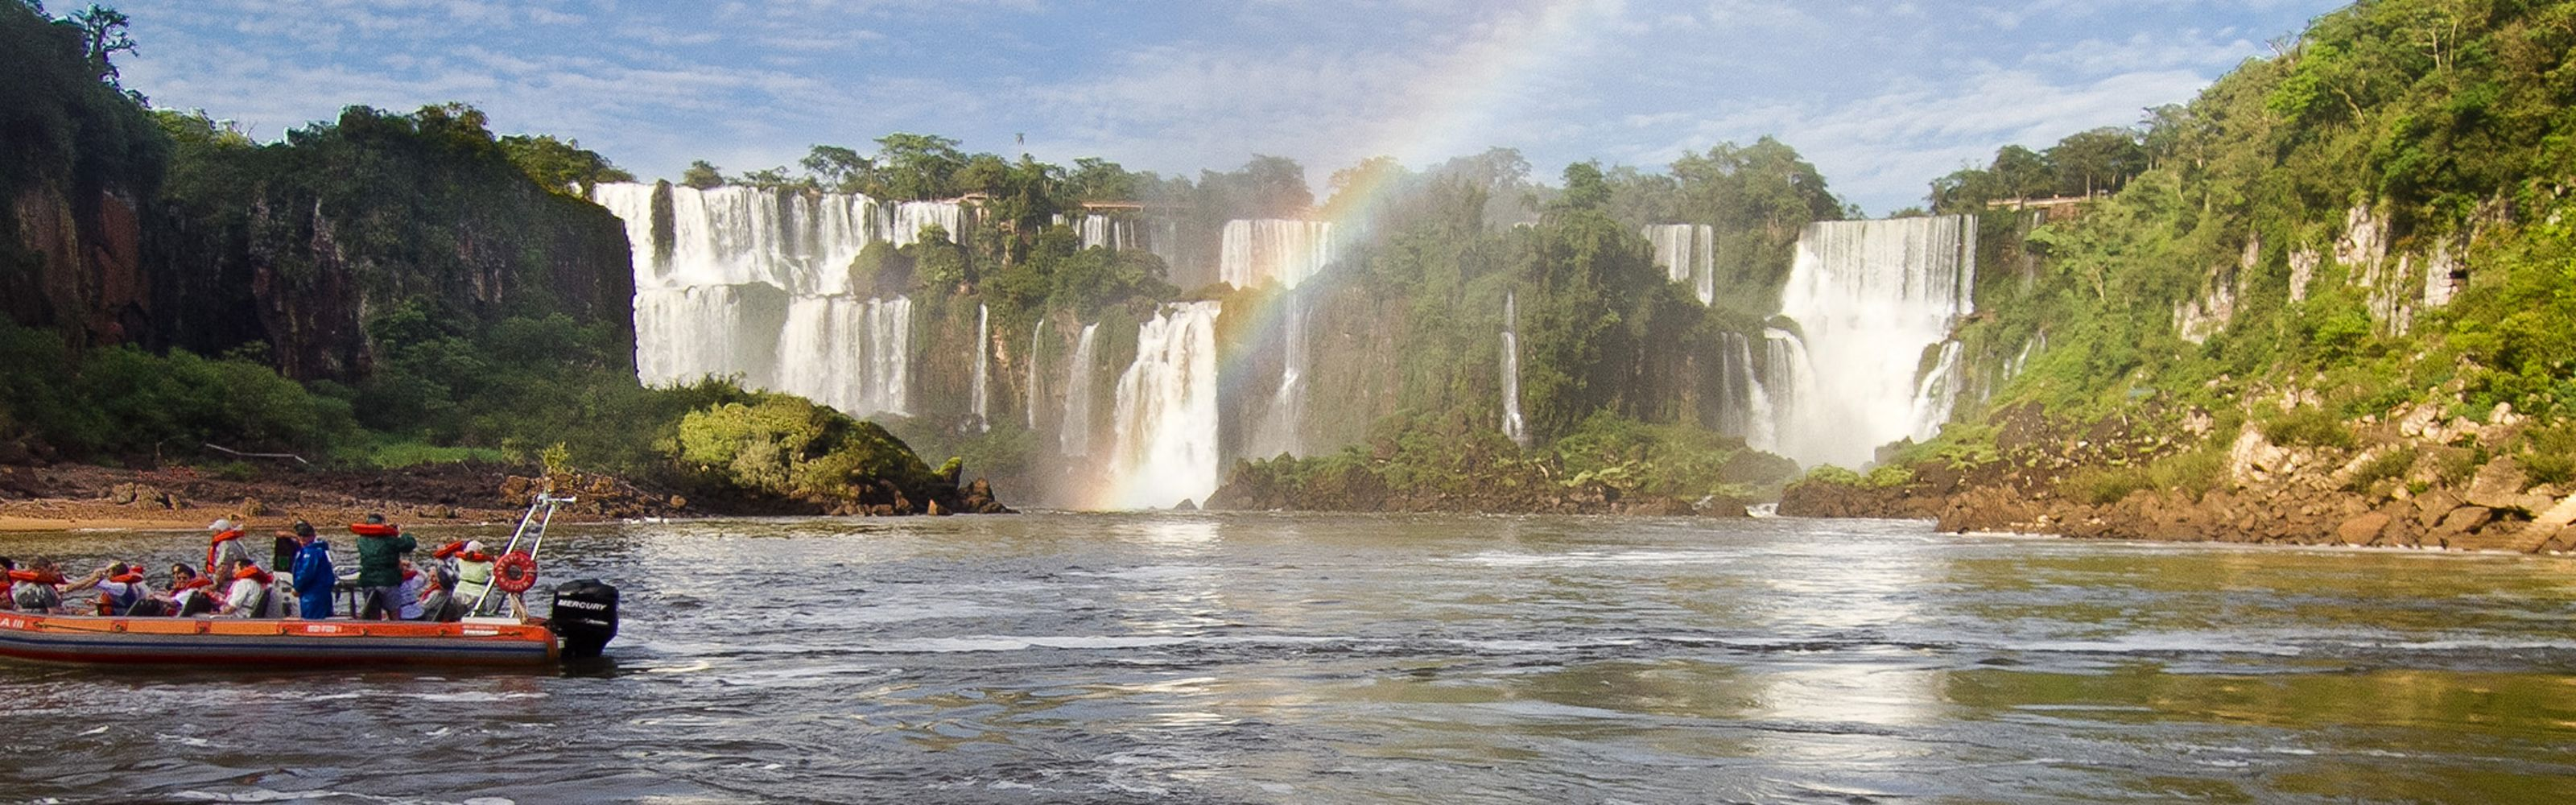 Tourists sit in a red motor boat at the based of Iguaçu